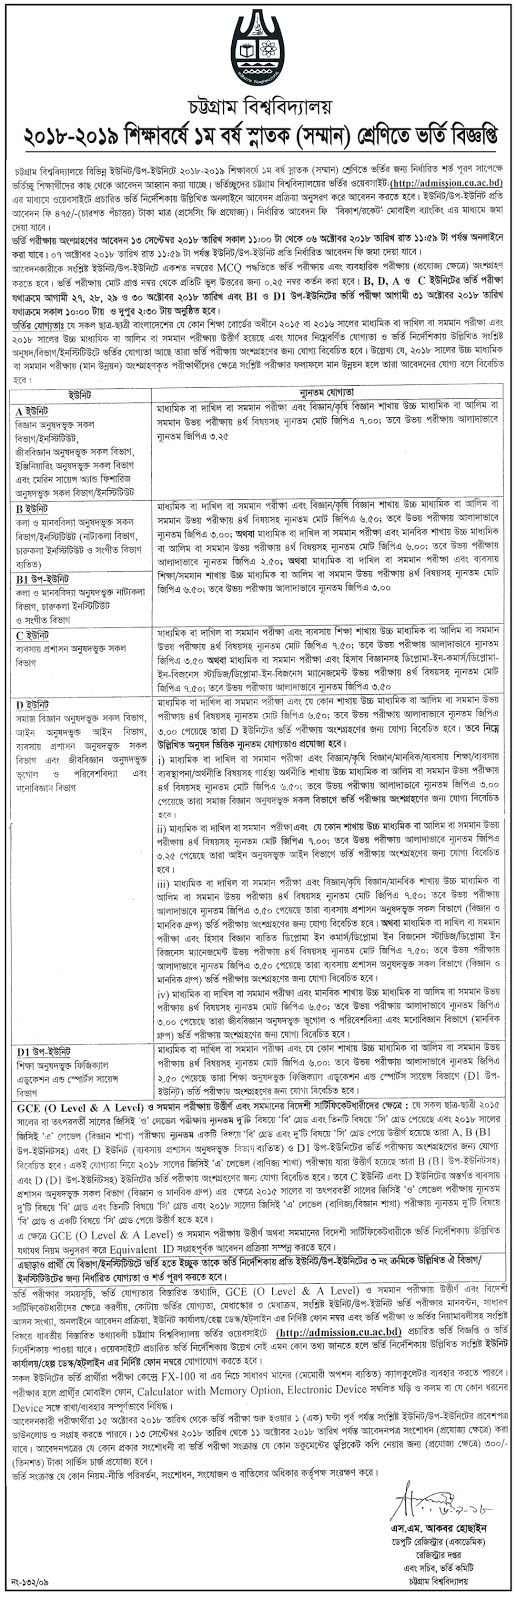 CU CTG Chittagong University Admission Test Circular 2018-19